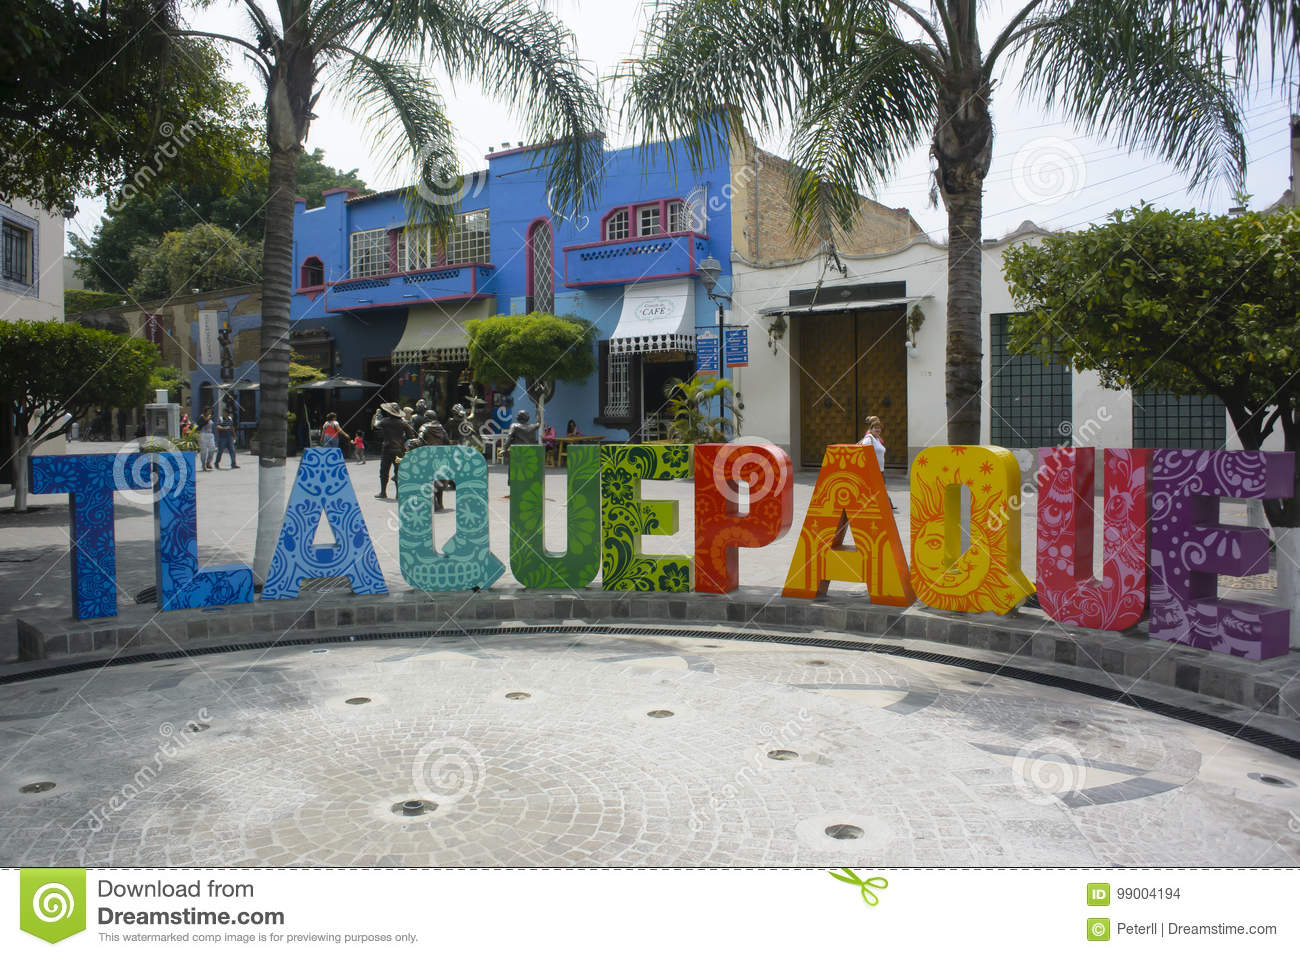 Town sign, Jalisco, Mexico.